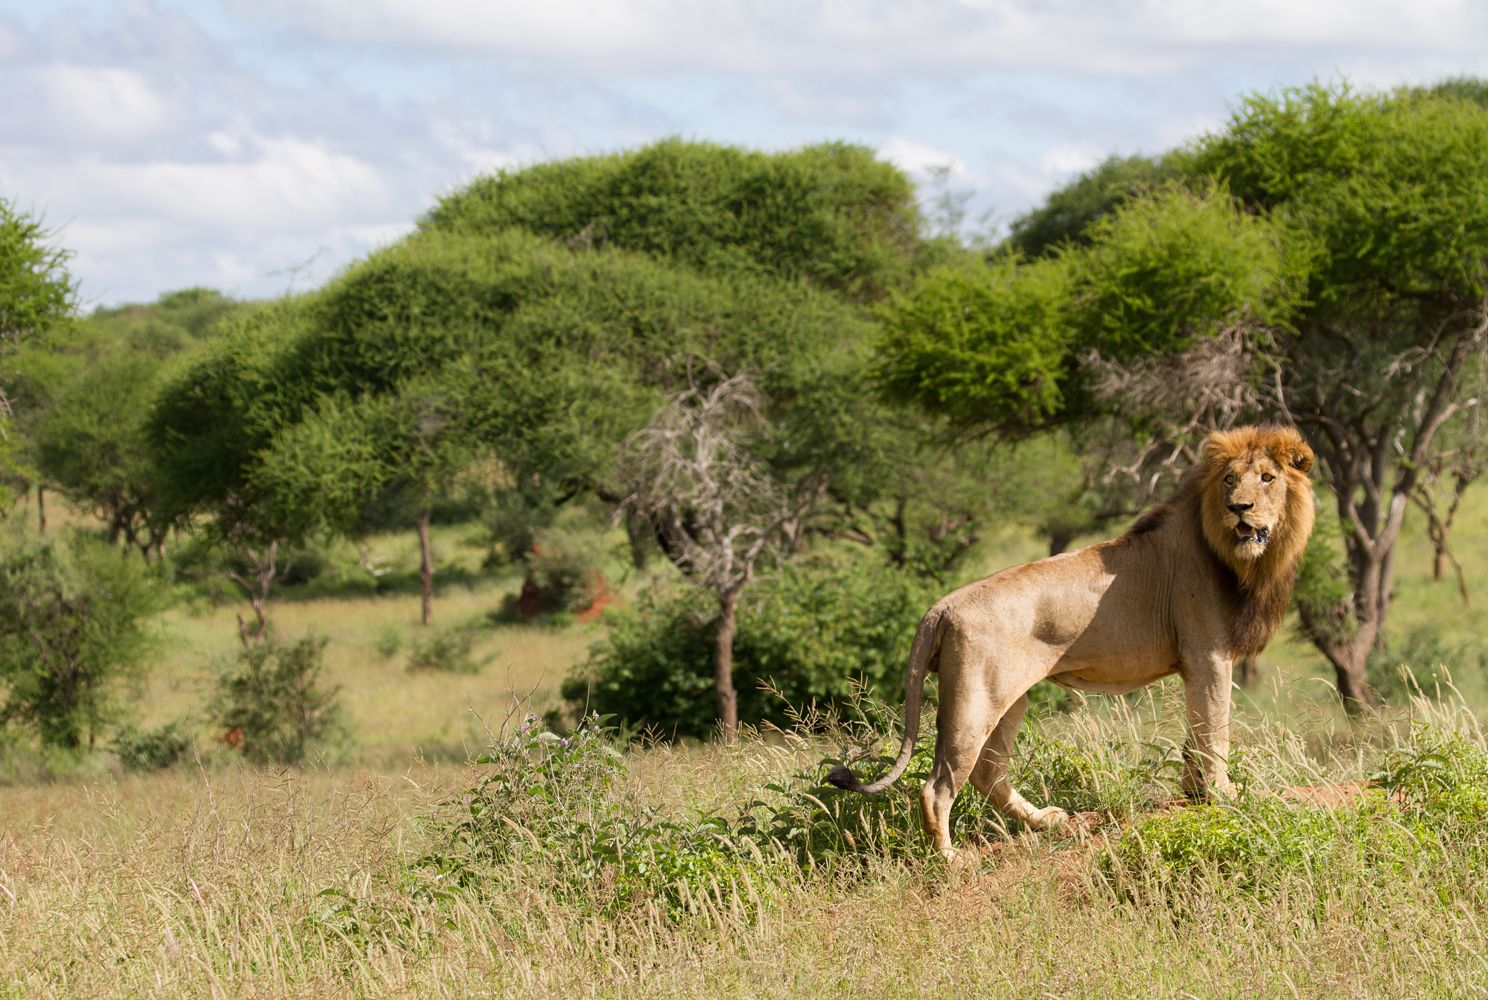 A male lion in the Tarangire ecosystem